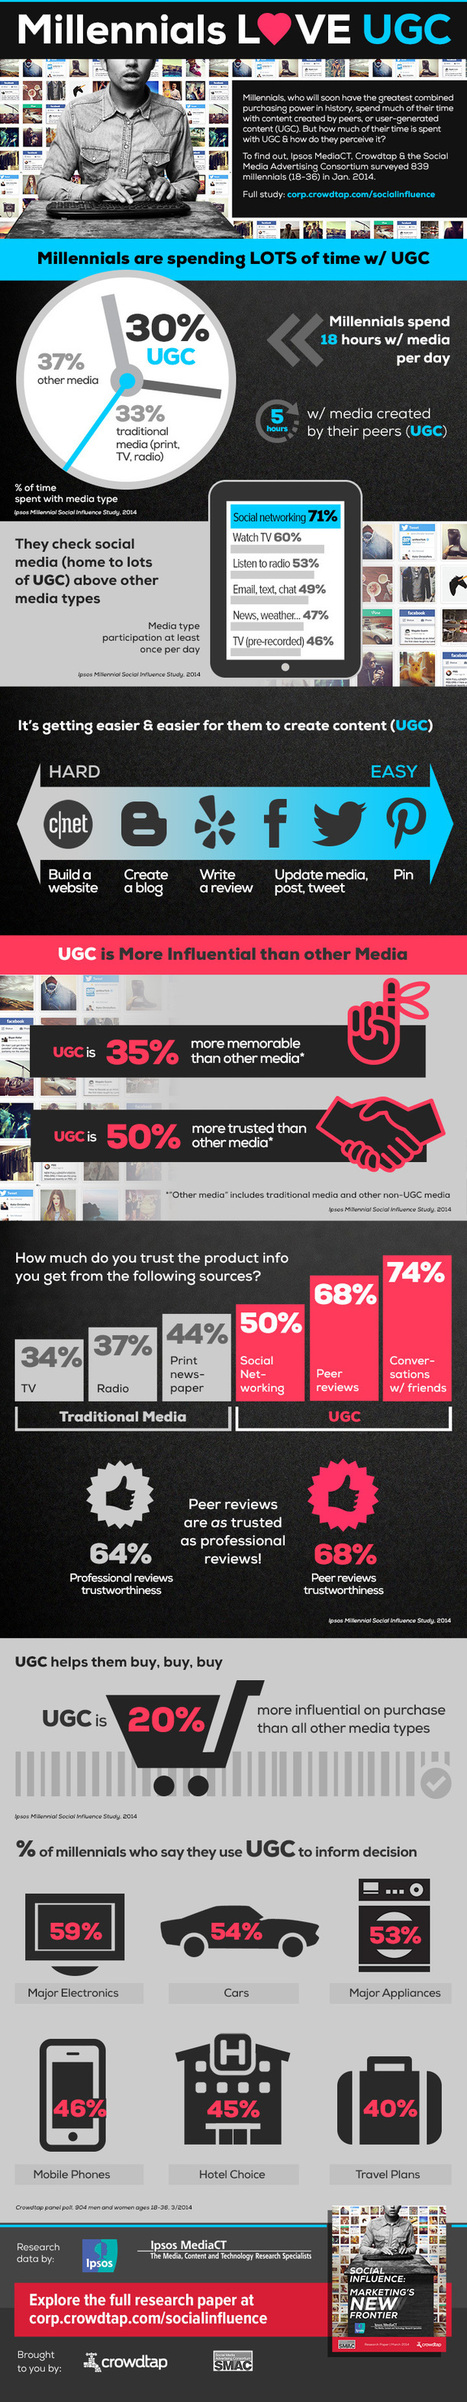 Millennials Love Social Media And User Generated Content #INFOGRAPHIC | Social Media Tips & News | Scoop.it